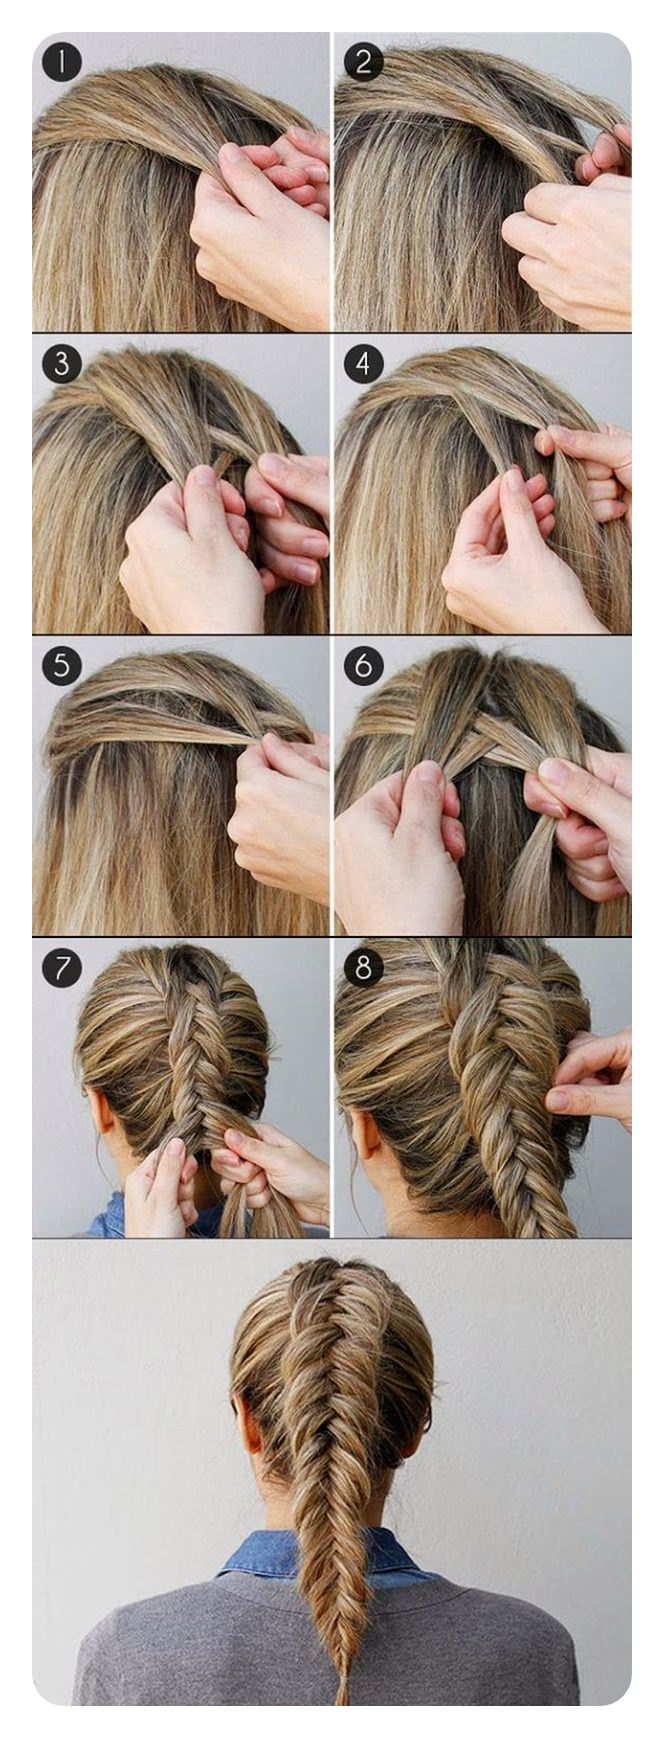 104 easy fishtail braid ideas and their step by step tutorial.